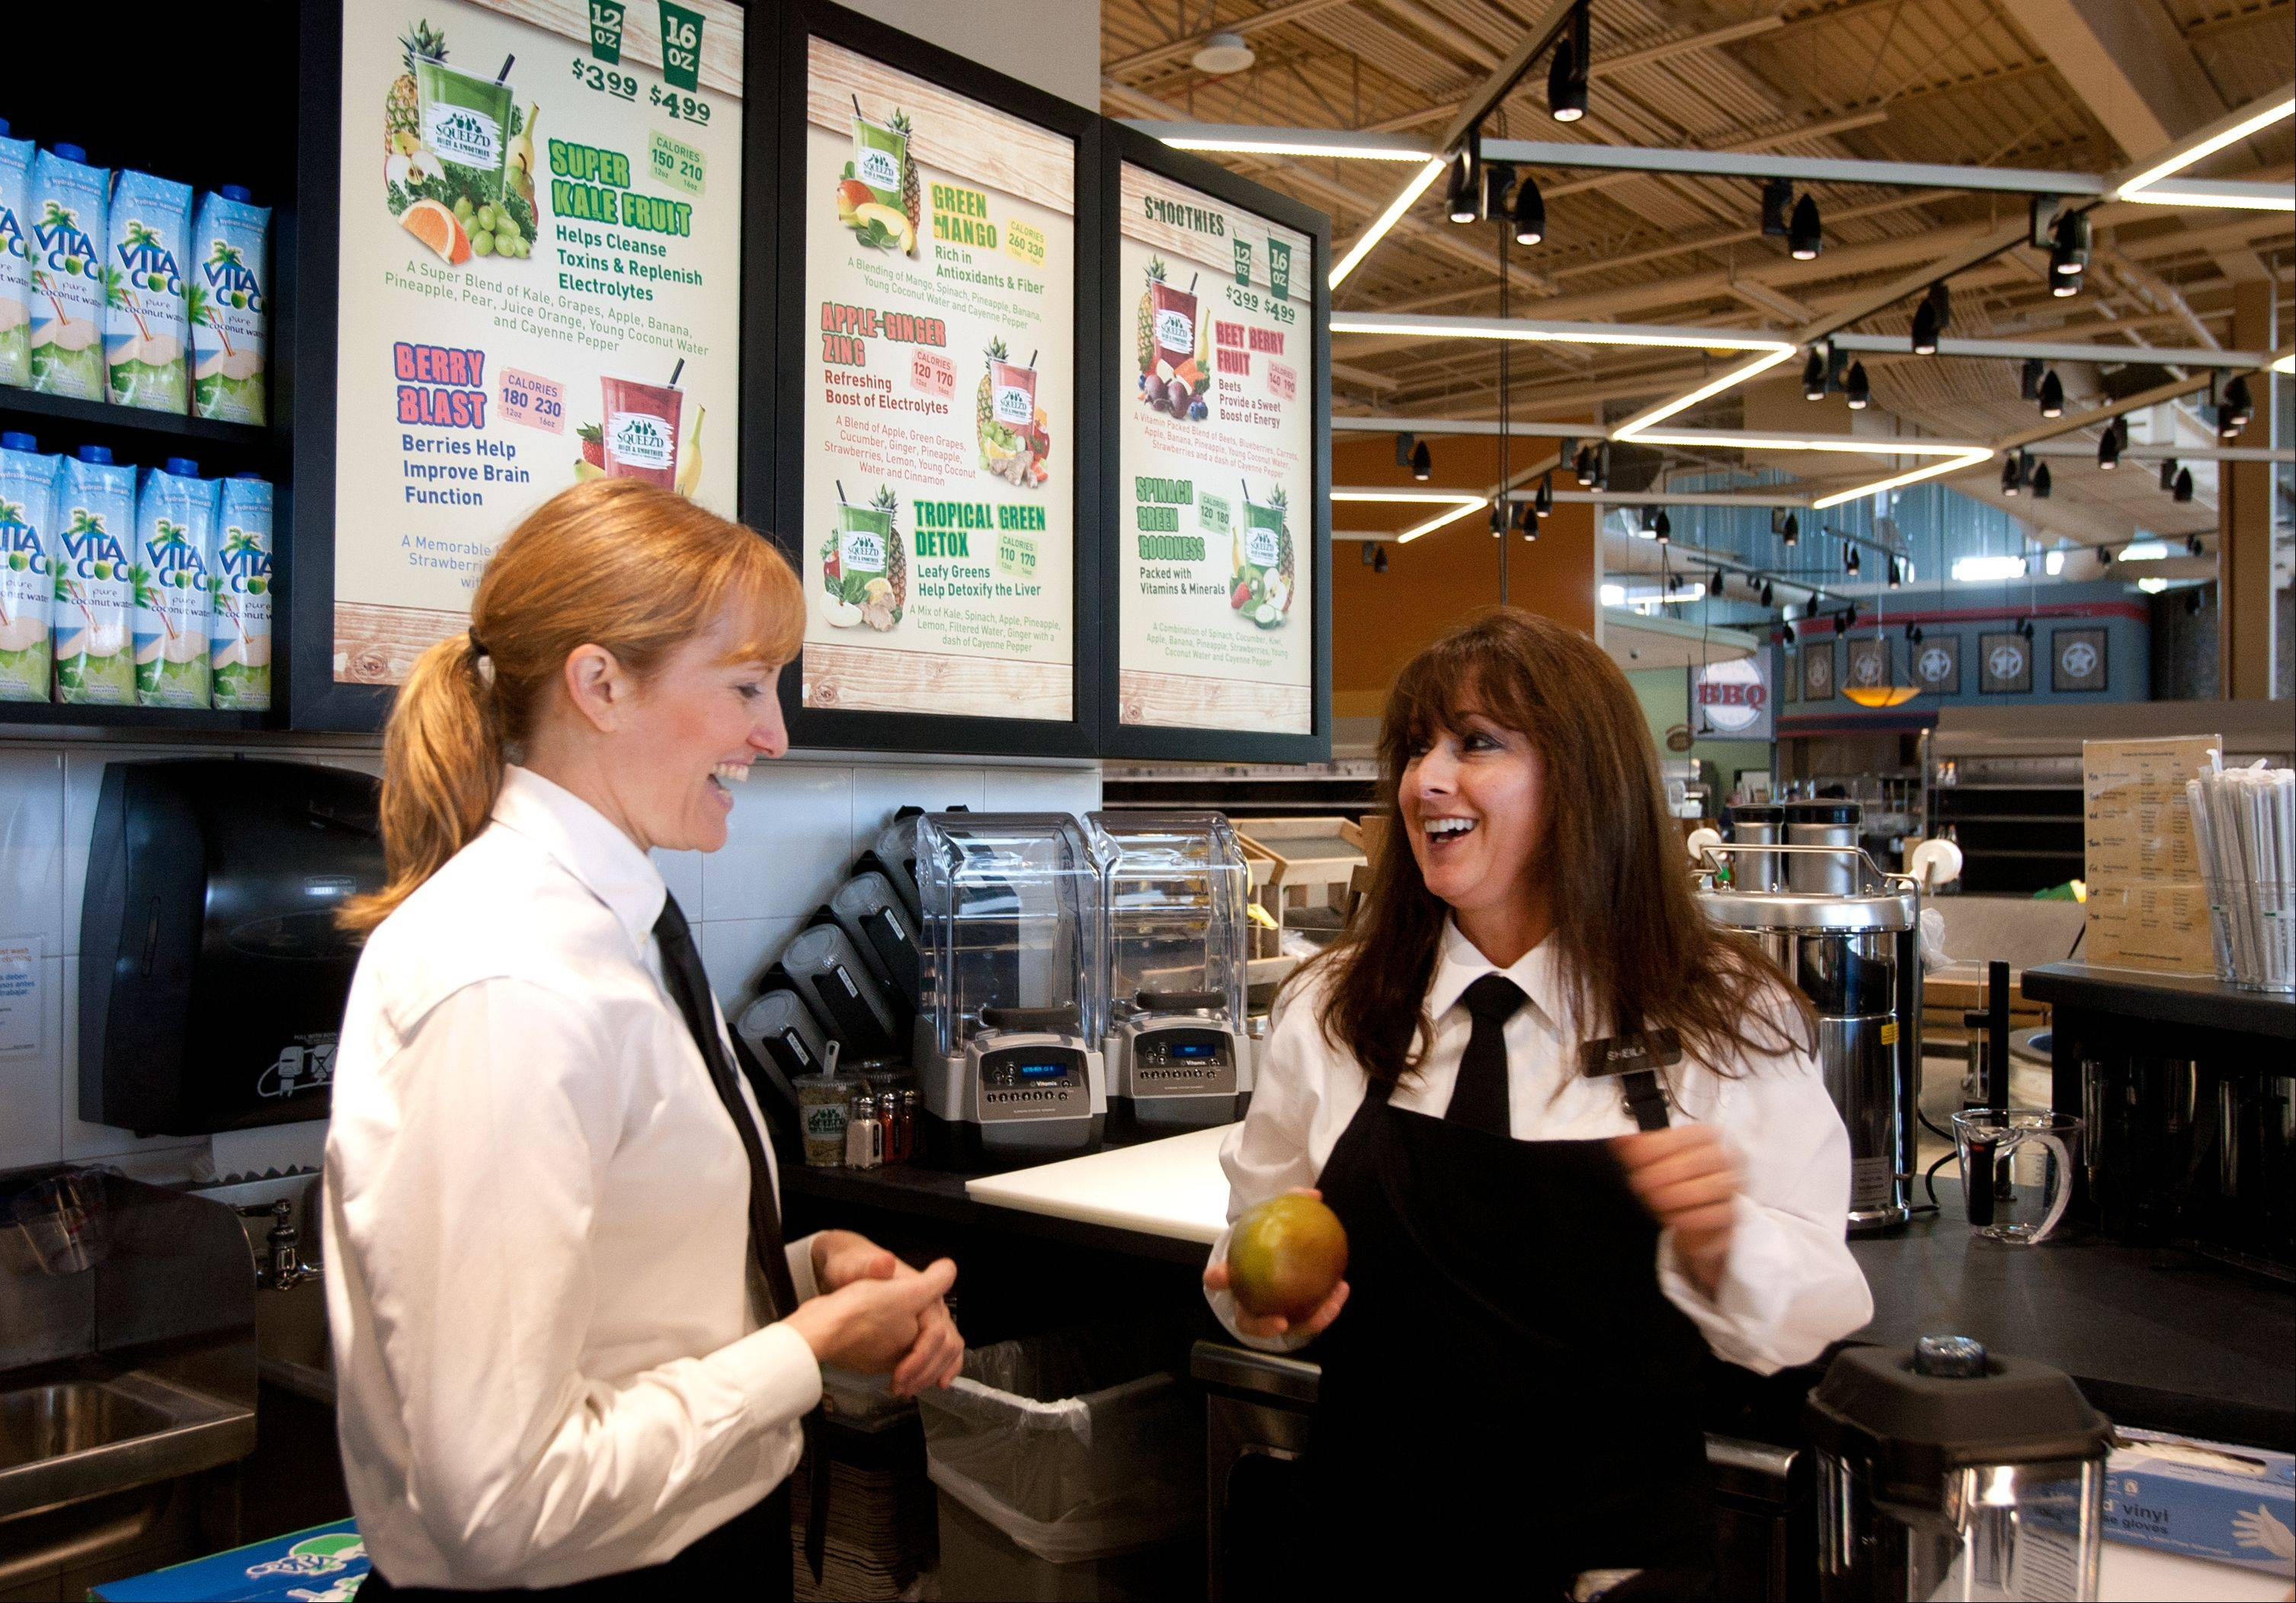 Amelia Hodak, left, and Sheila Buck, discuss smoothie recipes at the smoothie bar located just inside Mariano�s entrance.